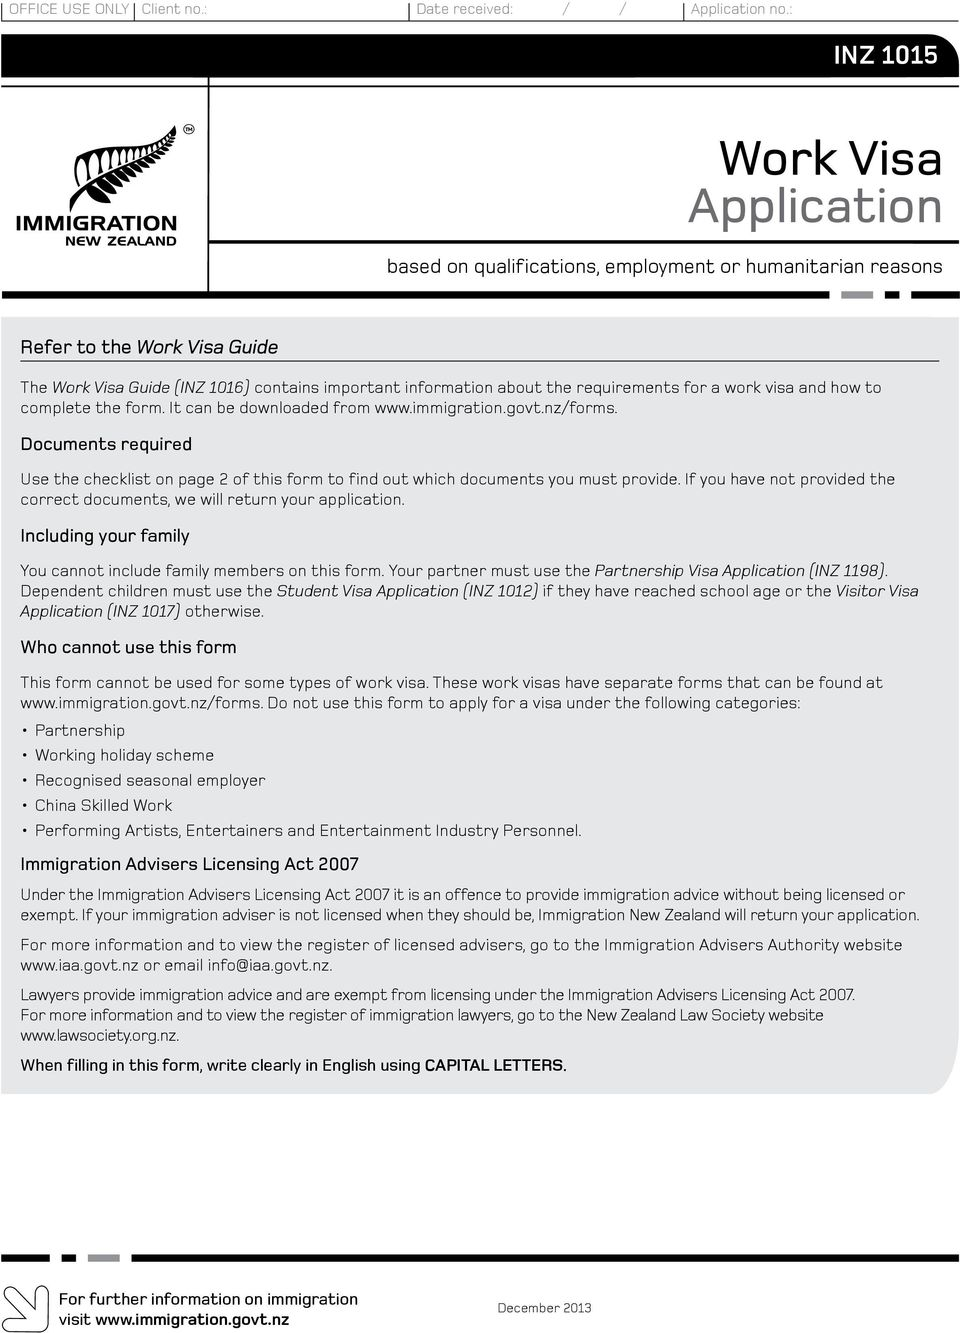 requirements for a work visa and how to complete the form. It can be downloaded from www.immigration.govt.nz/forms.